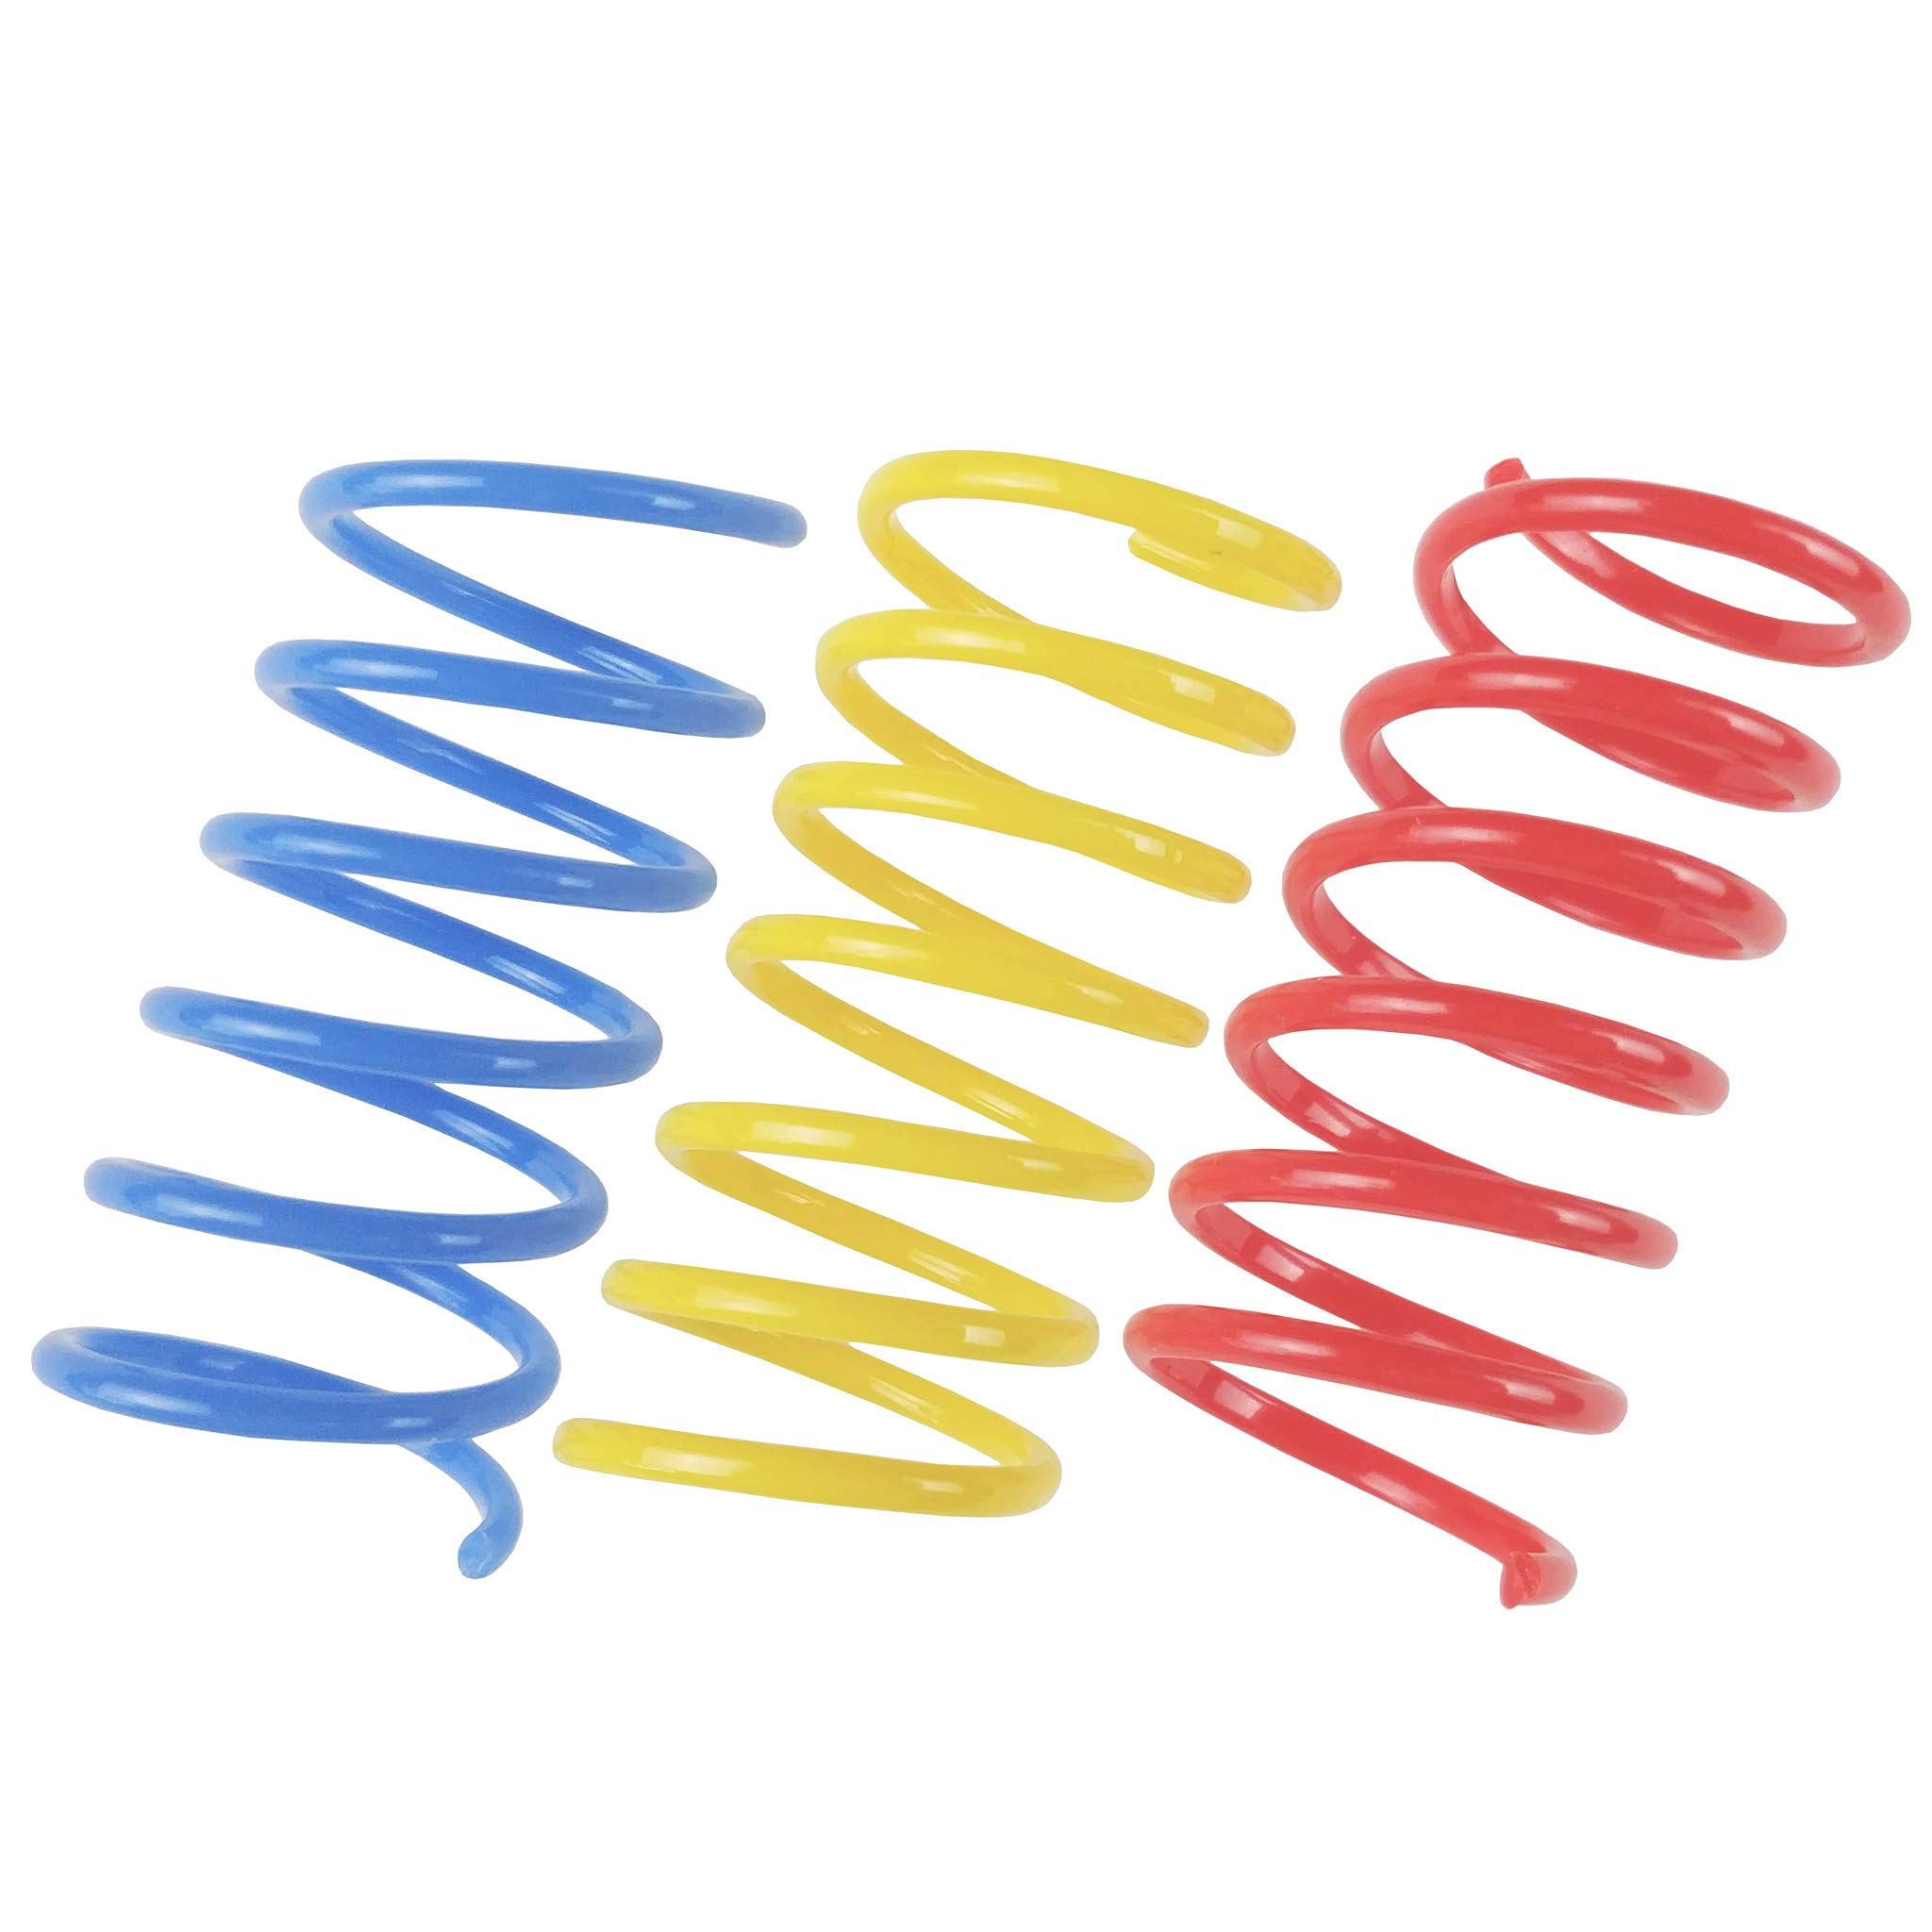 Tamu style Cat Spring Toys (60 Pack), Playful Coils for Kittens, BPA Free Plastic for Swatting, Biting, Hunting, and Active Healthy Play, Colorful 2 Inch Spirals